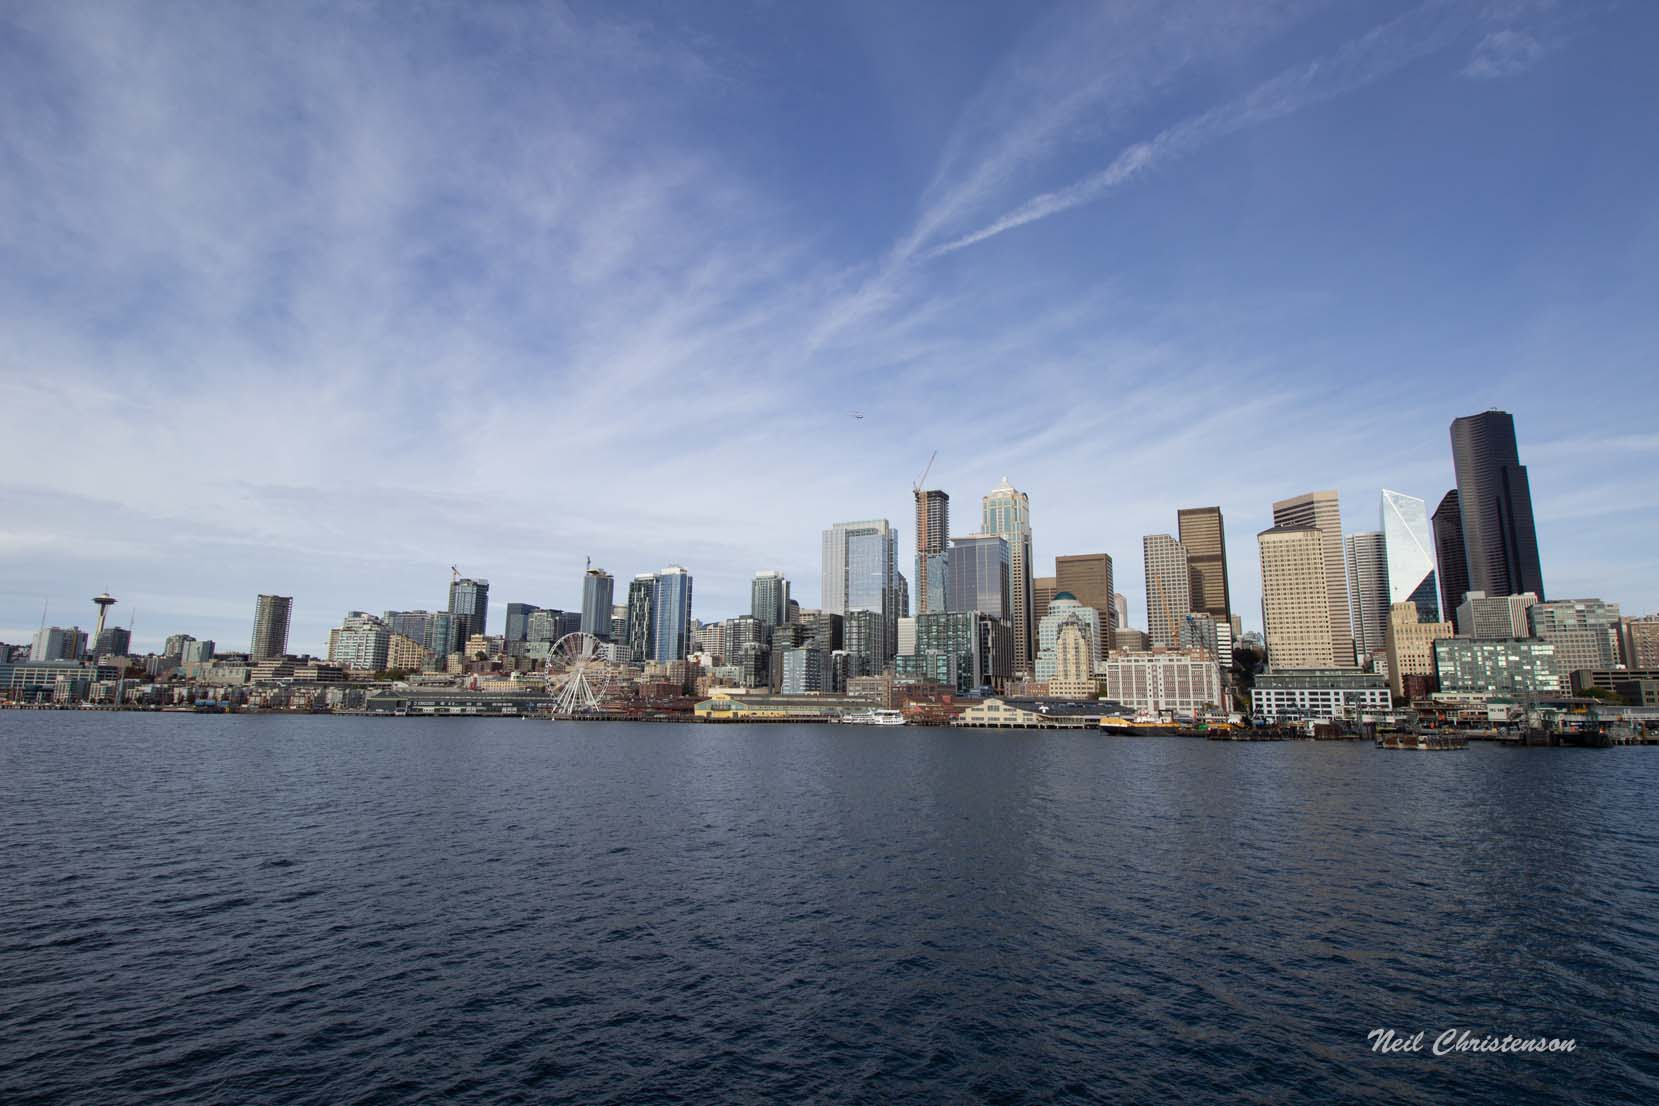 Seattle skyline from the water.